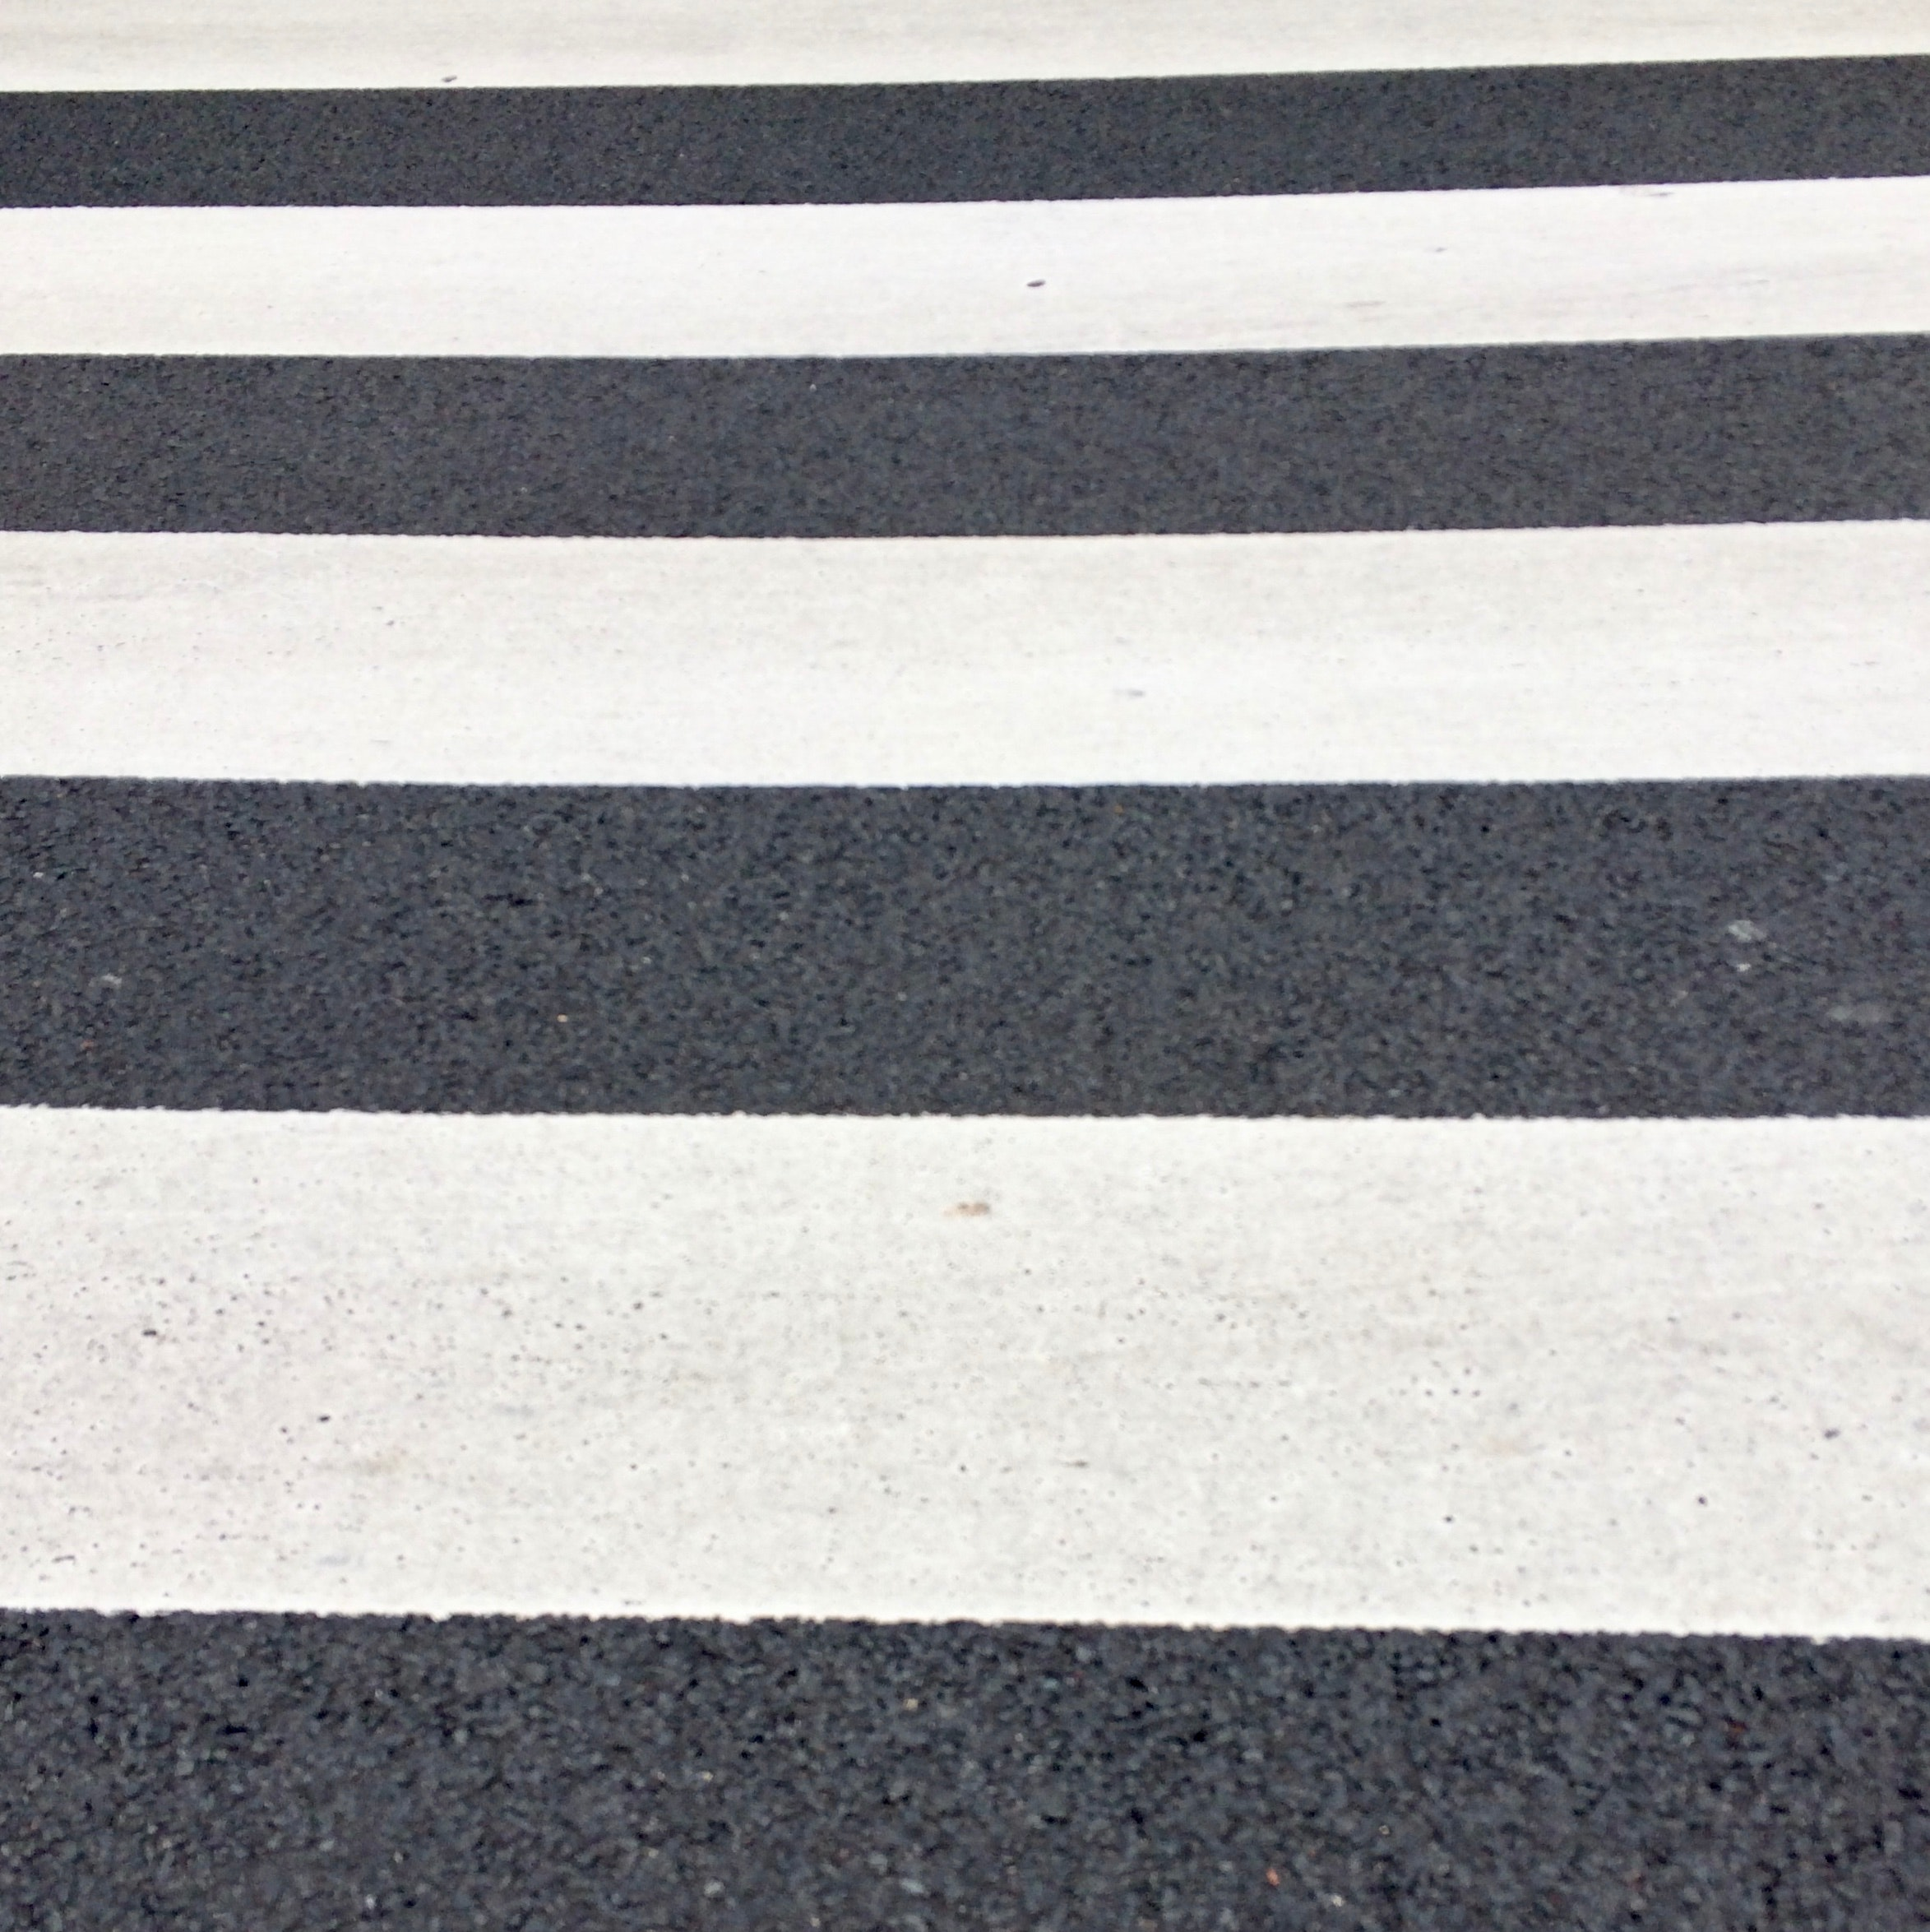 White and Gray Pedestrian Line, Asphalt, Background, Colors, Lines, HQ Photo